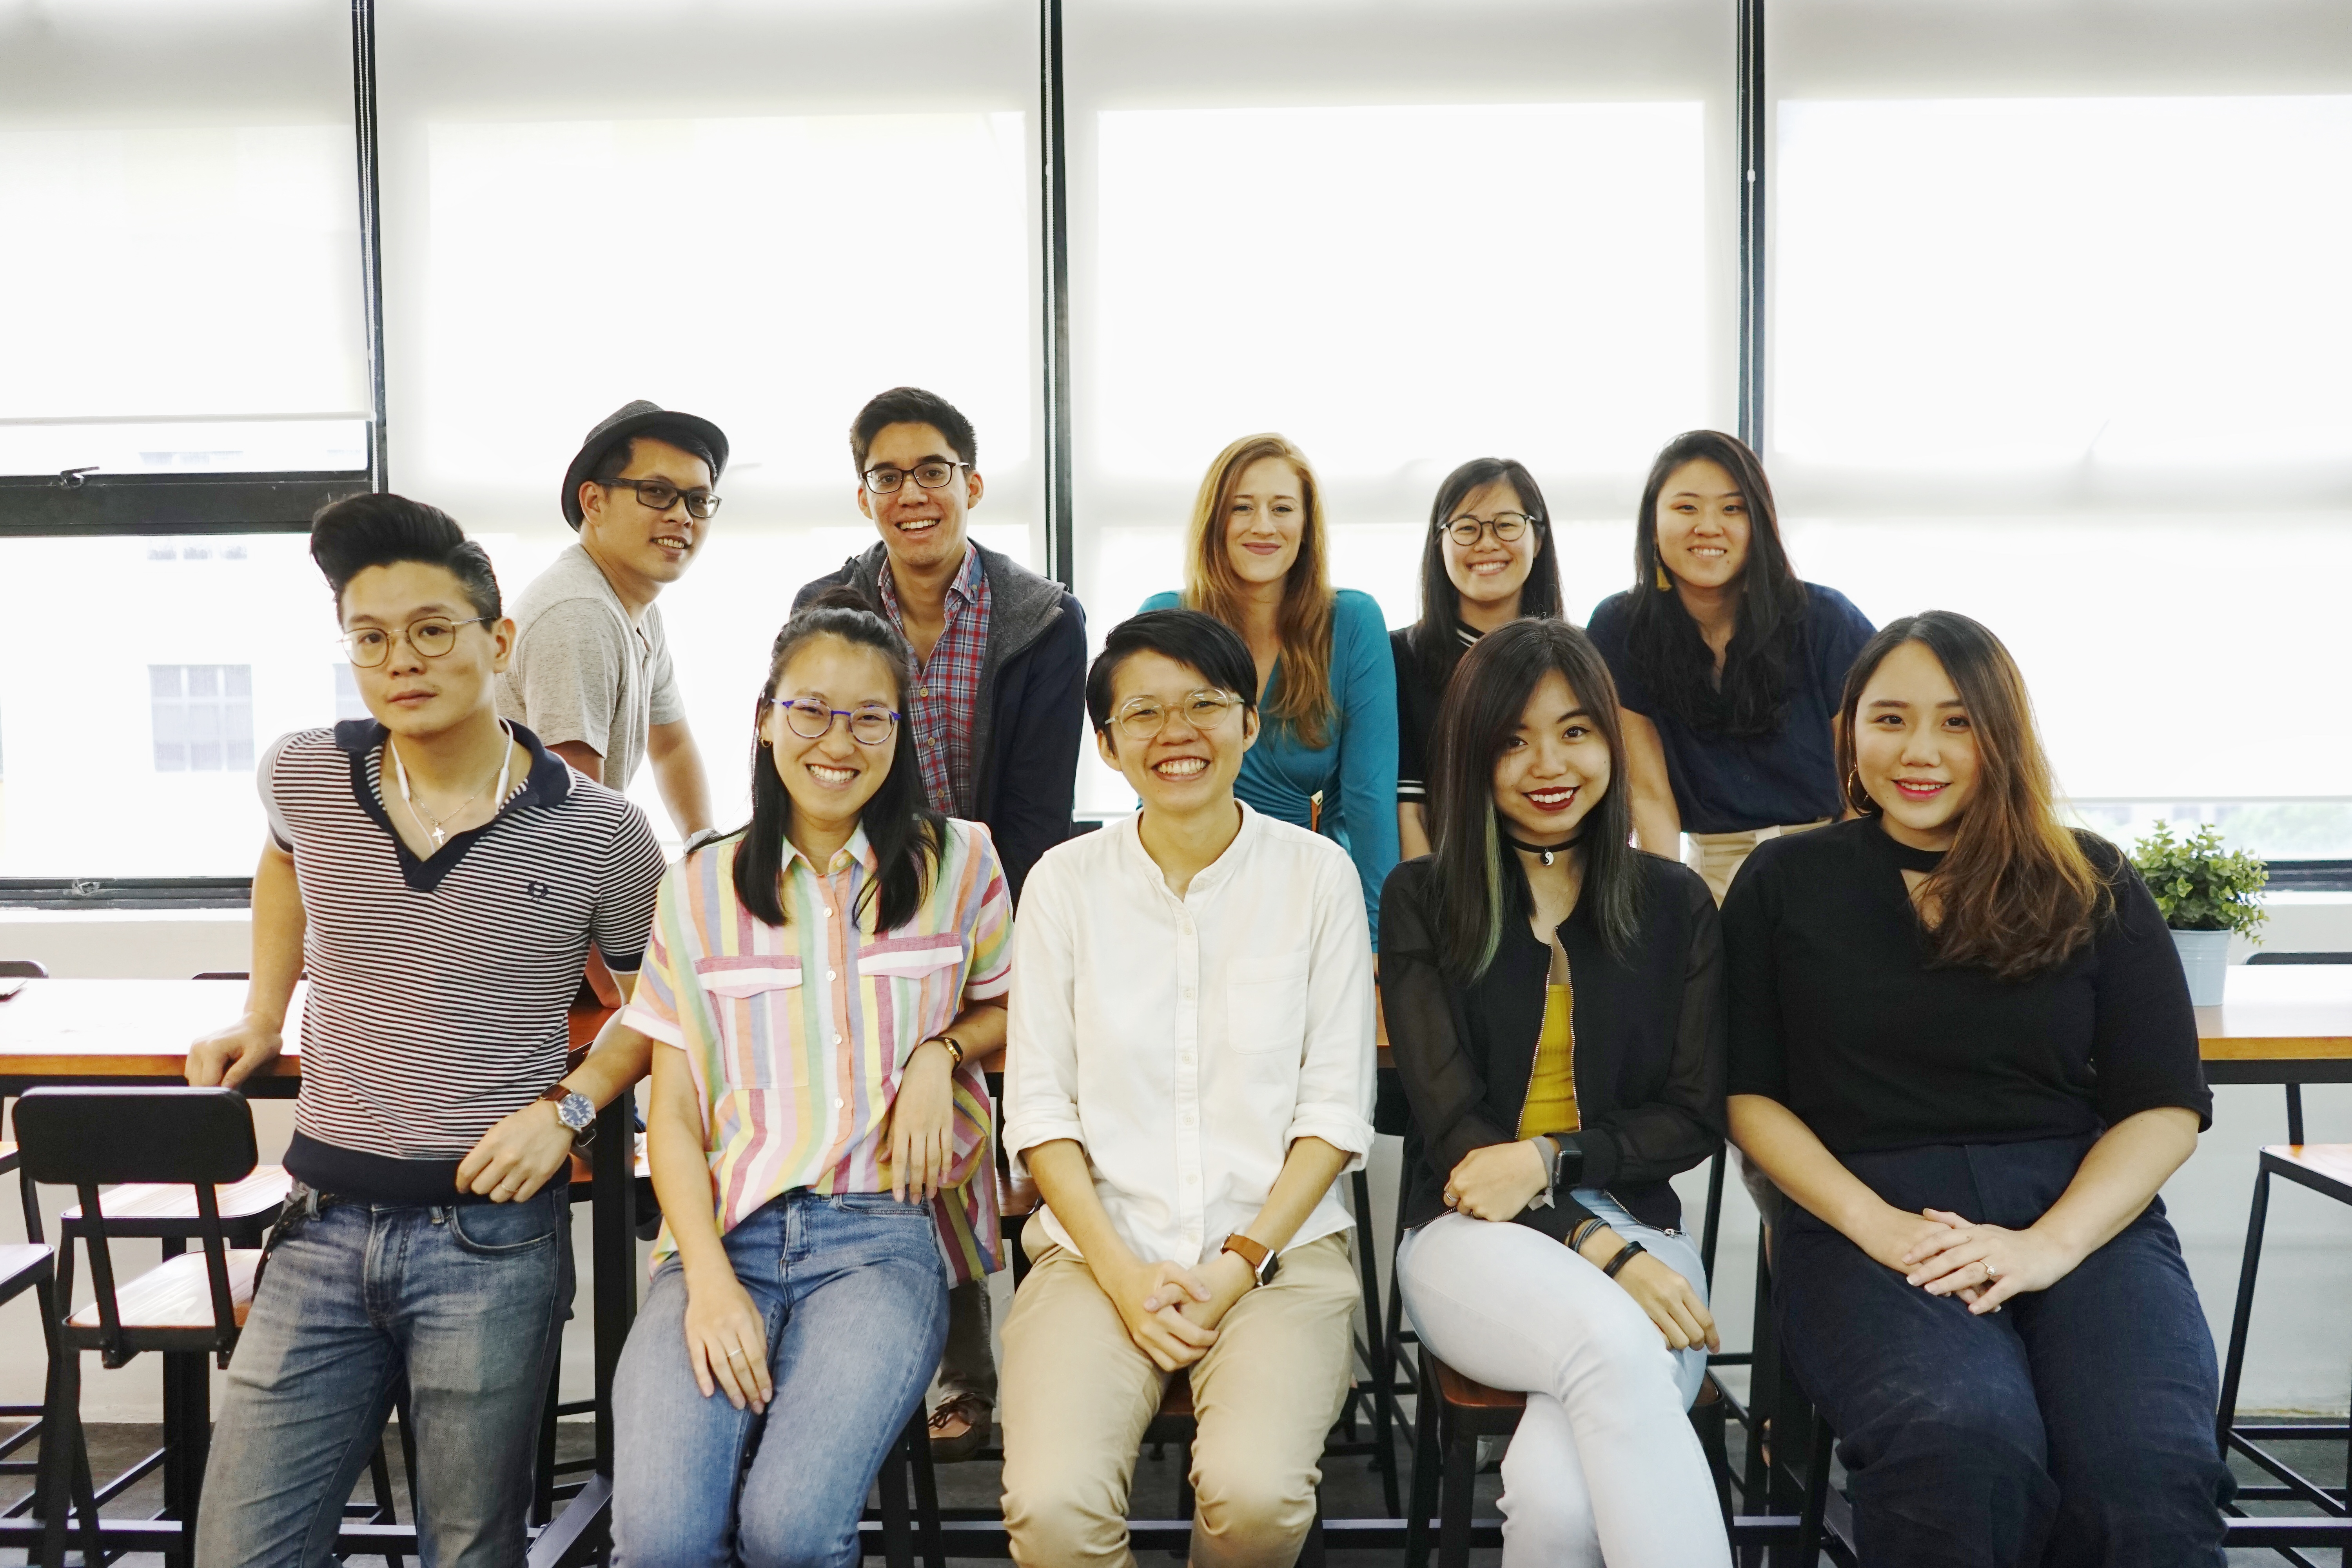 The marketing team at Circles.Life Singapore, consisting of marketing and community managers, analysts, and designers.